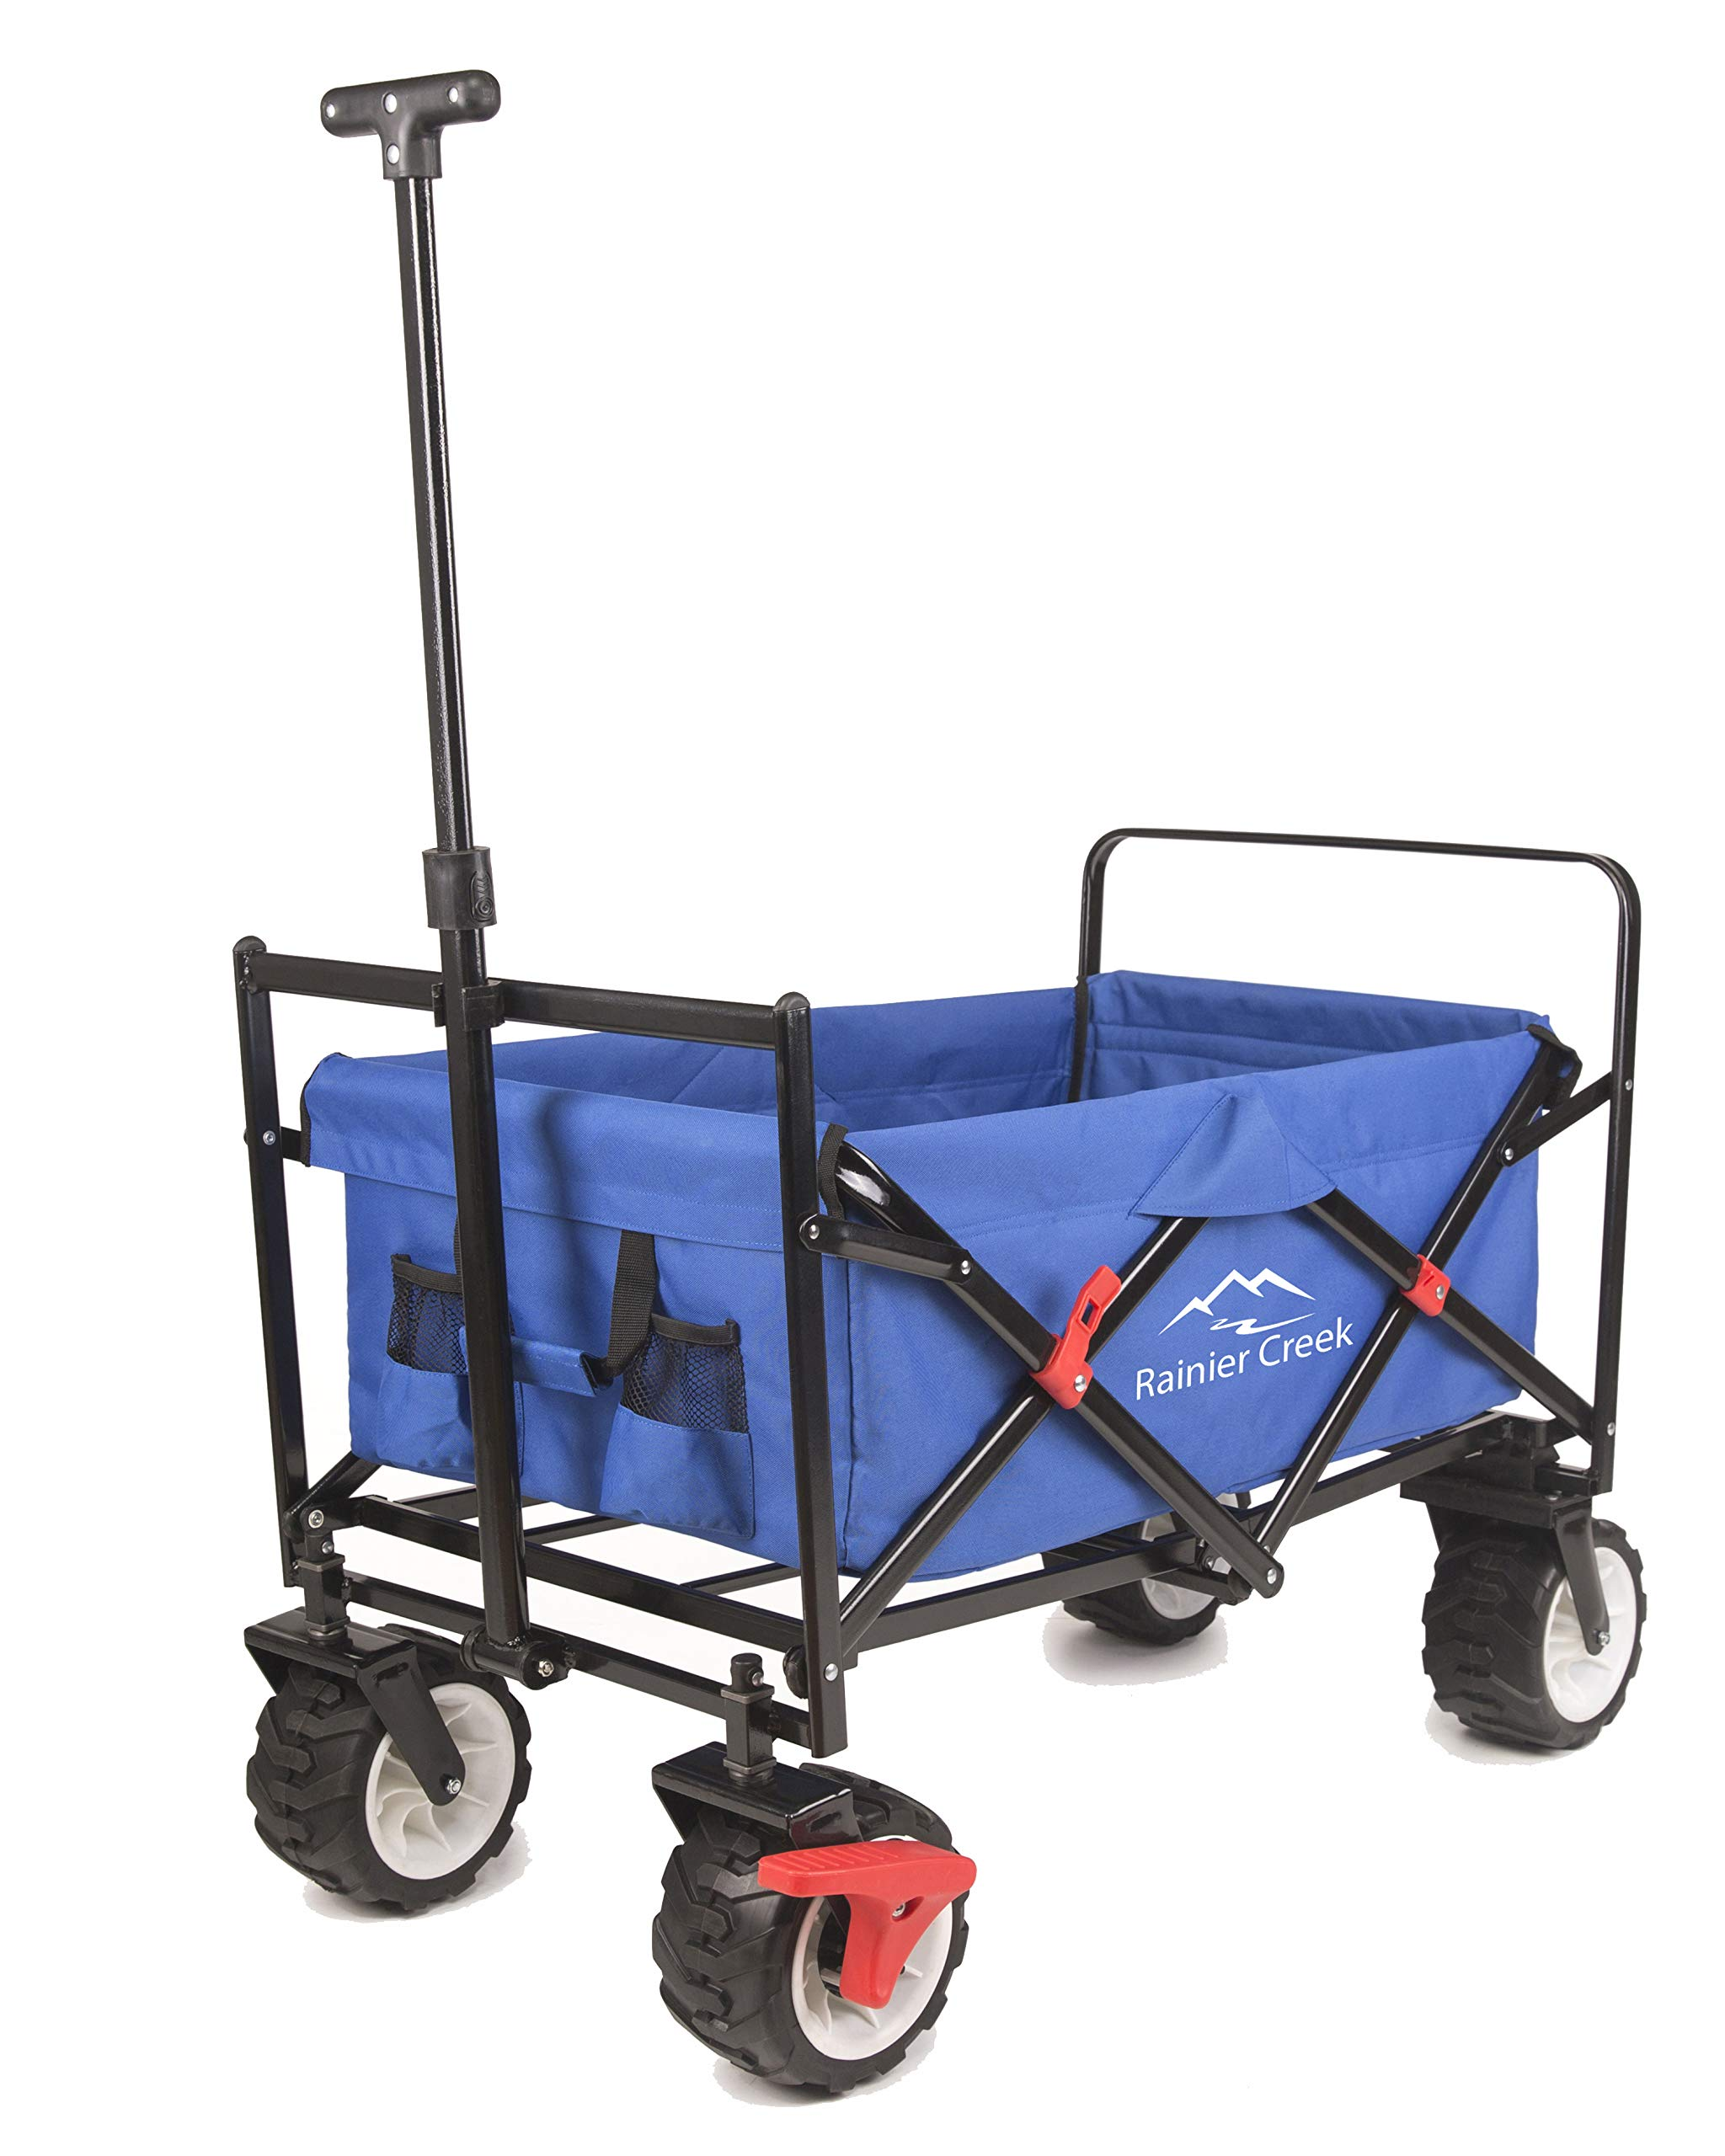 Rainier Creek Folding Wagon, Heavy Duty Collapsible Outdoor Utility Wagon Cart with All-Terrain Wheels and Brake, US Patented, 265 lbs Load Capacity, Blue